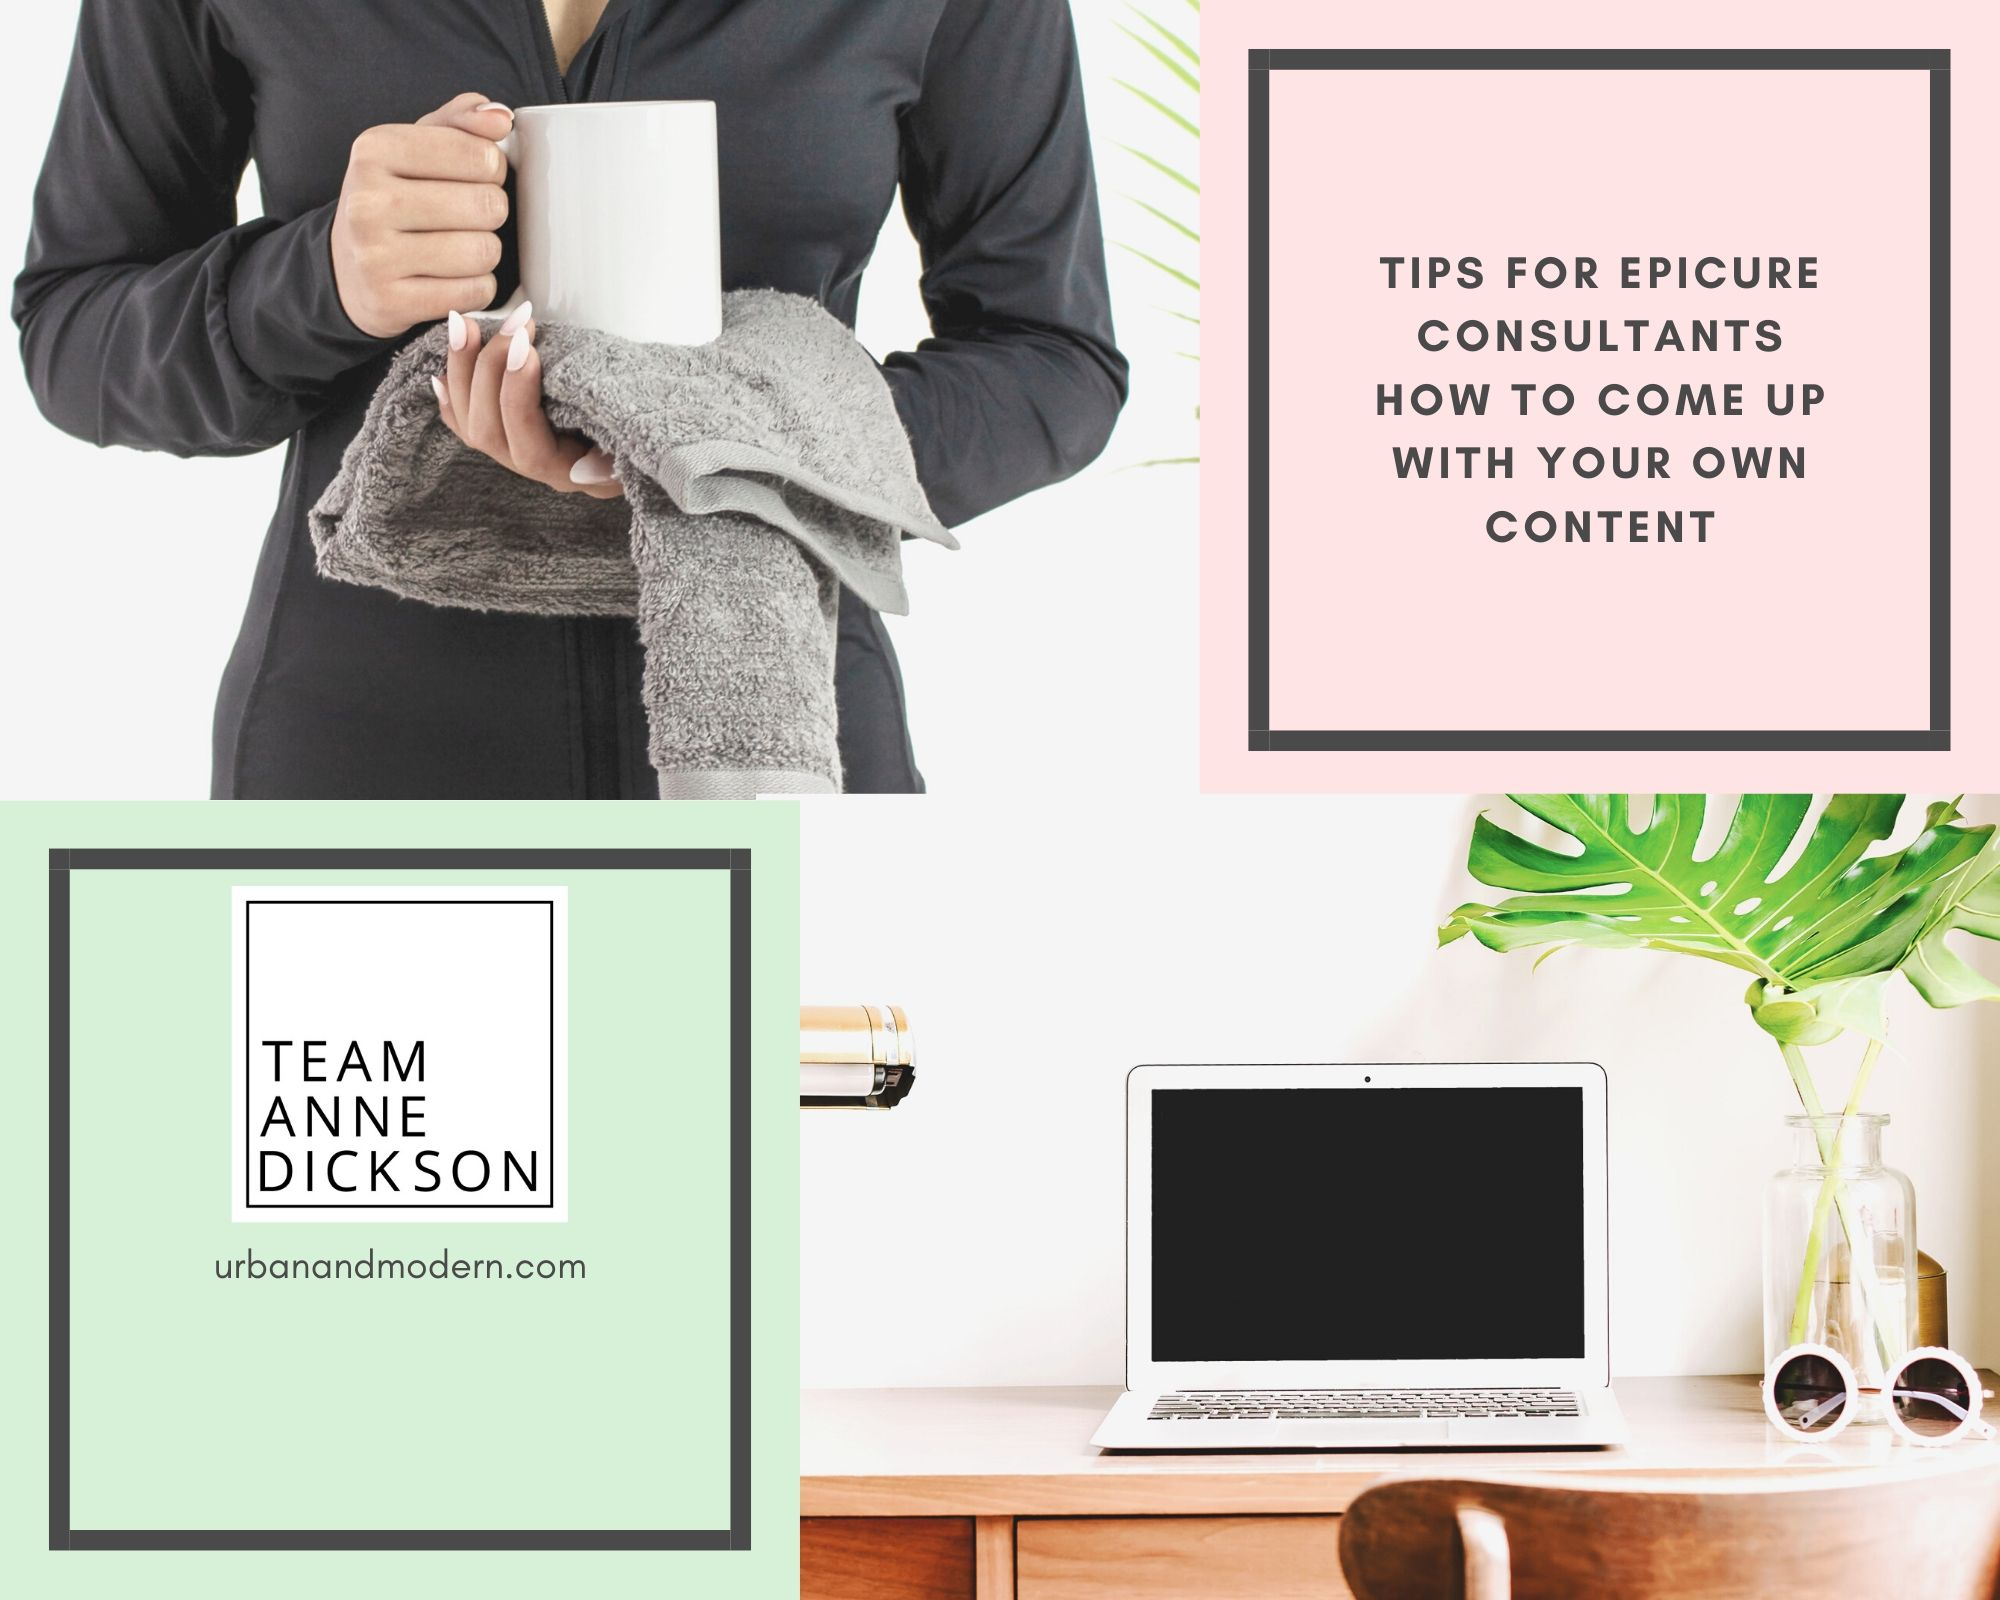 Tips for Epicure Consultants – how to come up with social media ideas